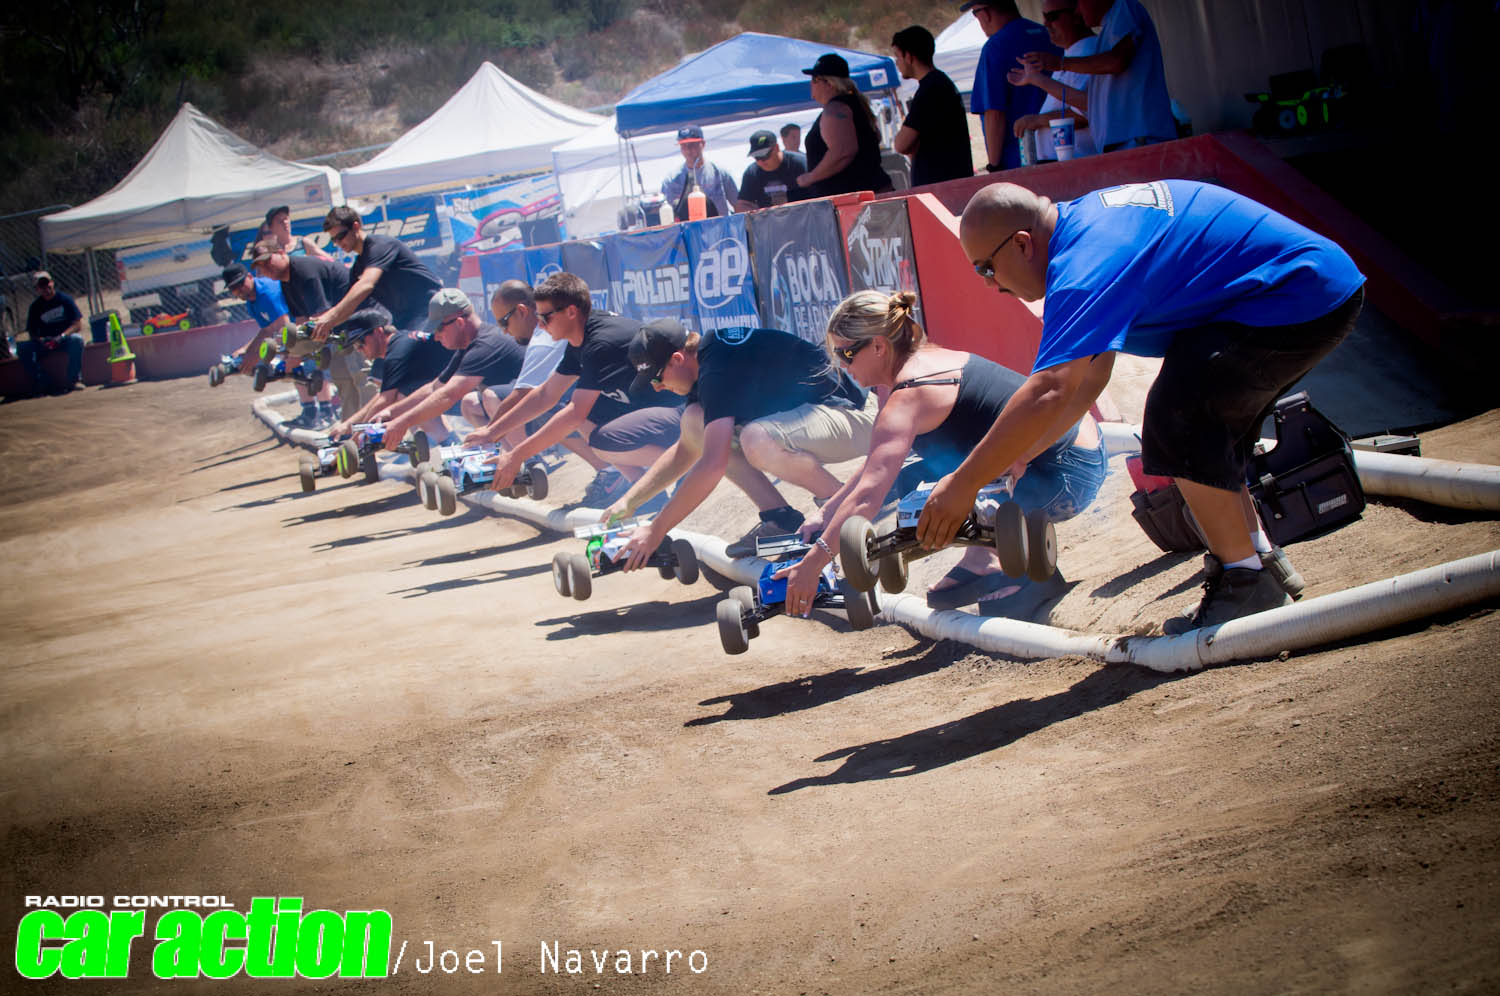 2012 Sidewinder Nitro Explosion Race Coverage – The Drake and Cavalieri Take Home the Big Wins